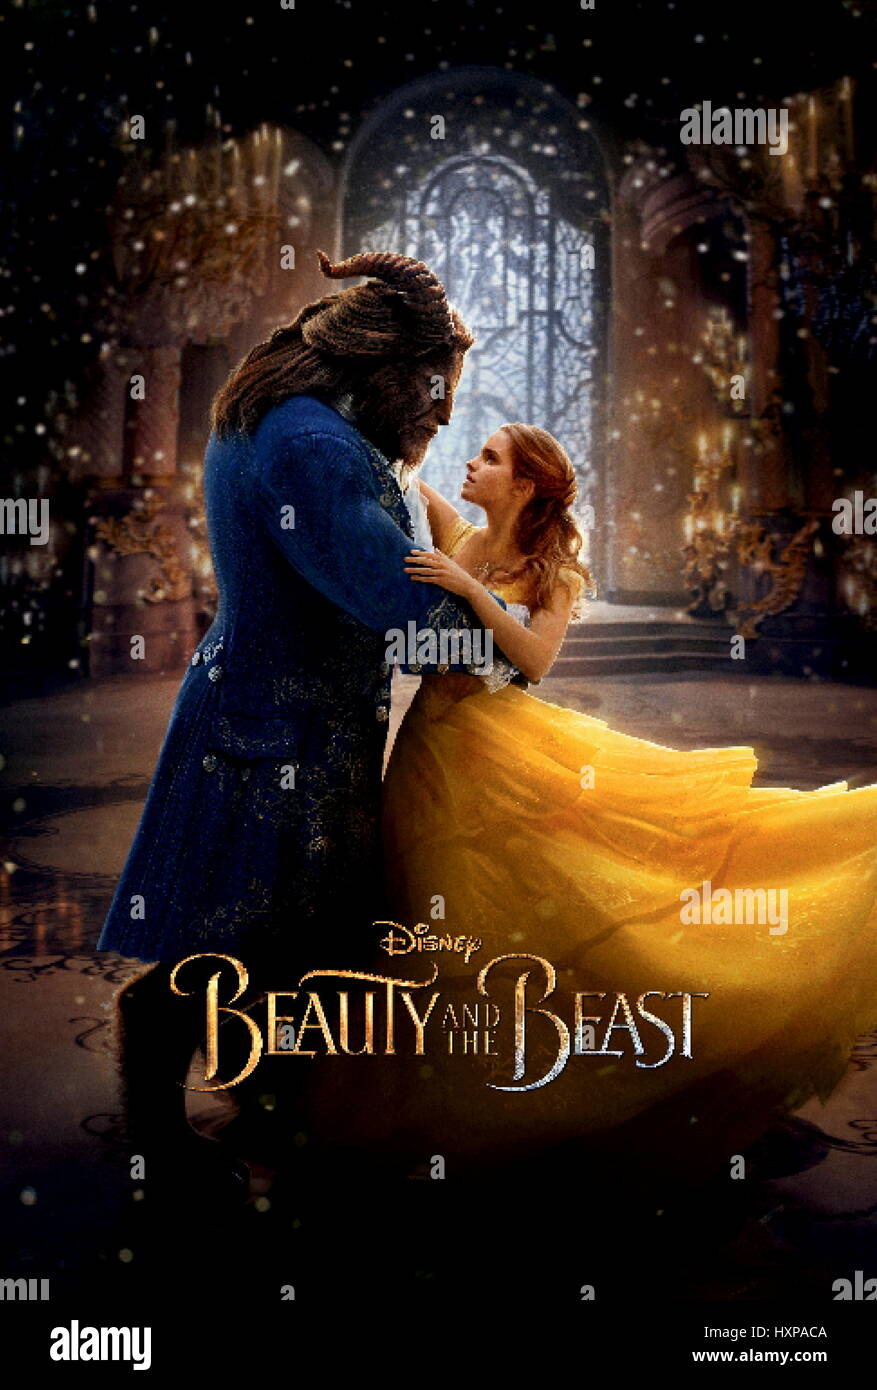 RELEASE DATE March 17 2017 TITLE Beauty And The Beast STUDIO Walt Disney Pictures DIRECTOR Bill Condon PLOT An Adaptation Of Fairy Tale About A